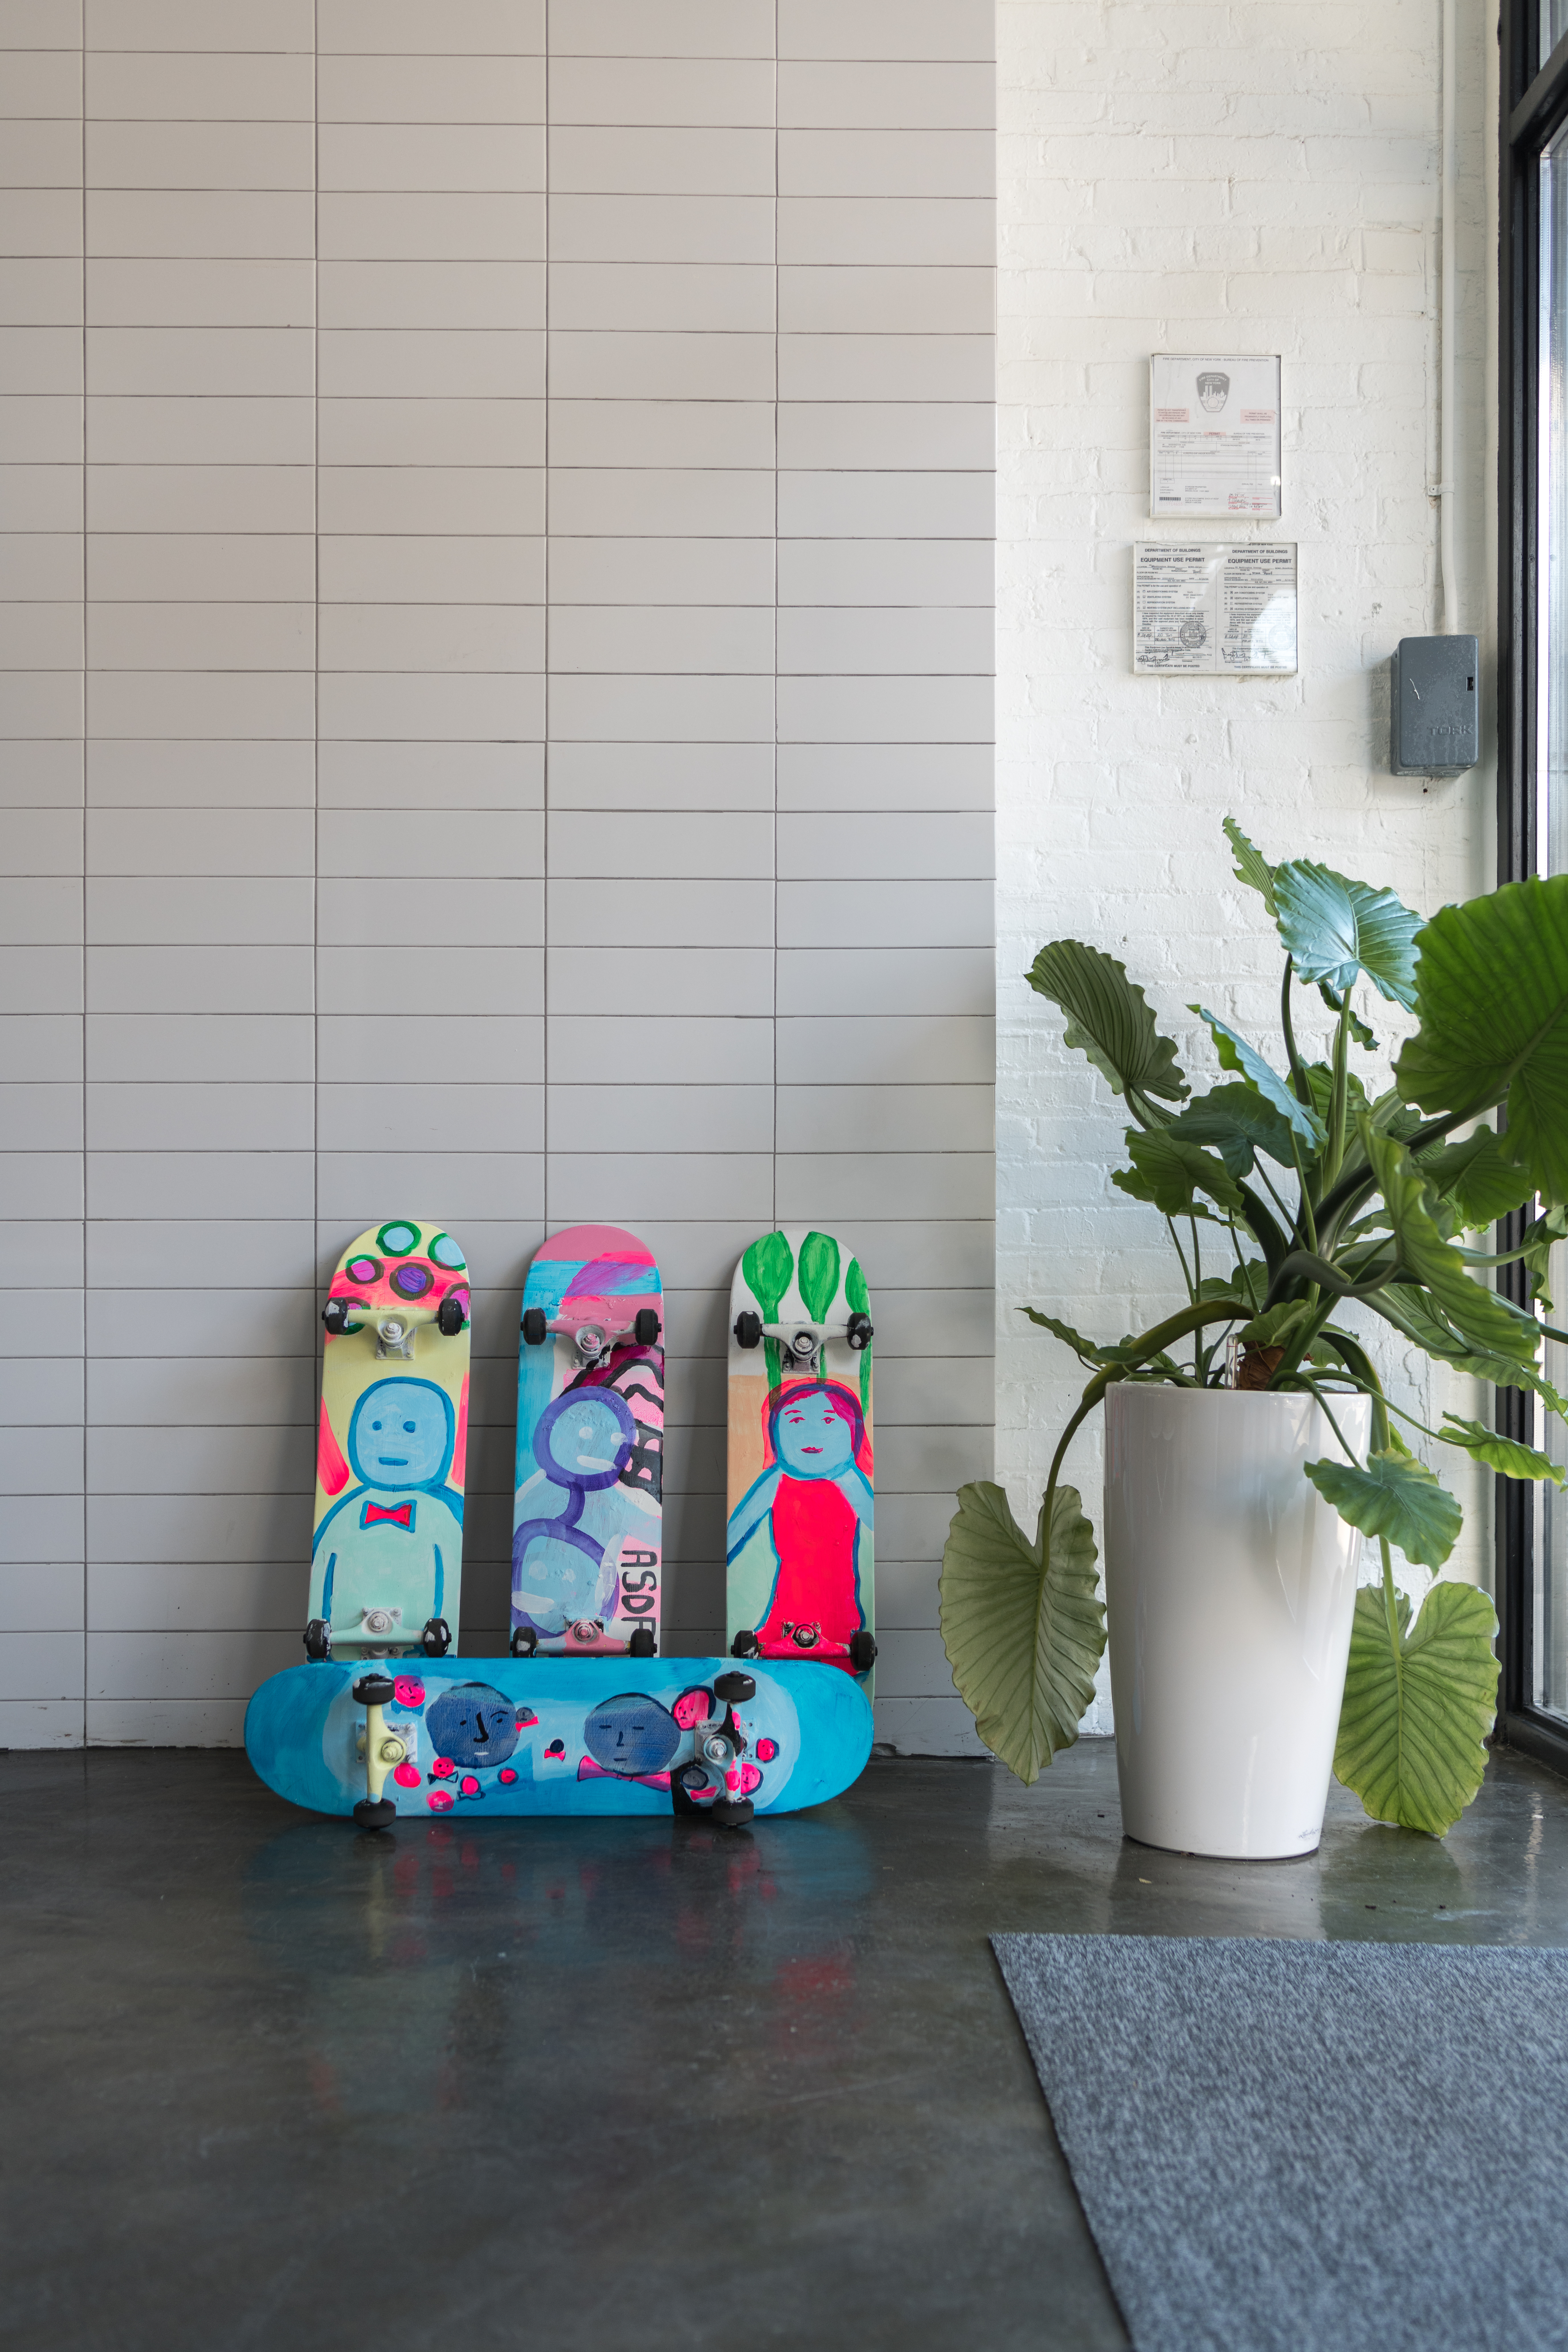 Skateboard paintings set in Recess. White tiled walls and big green tree.